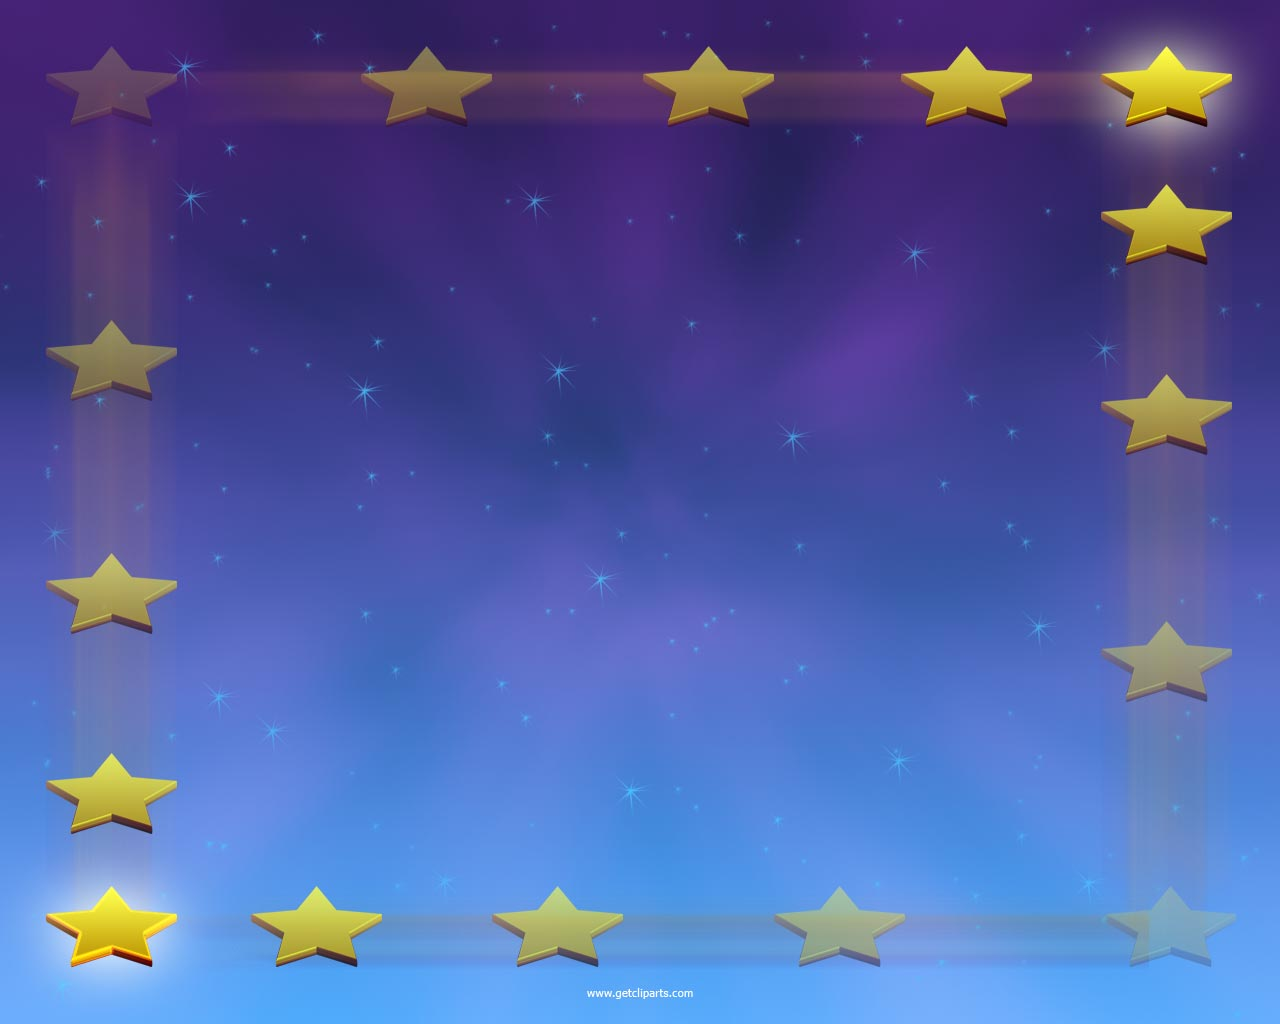 border frame in night blue background. The star powerpoint background ...